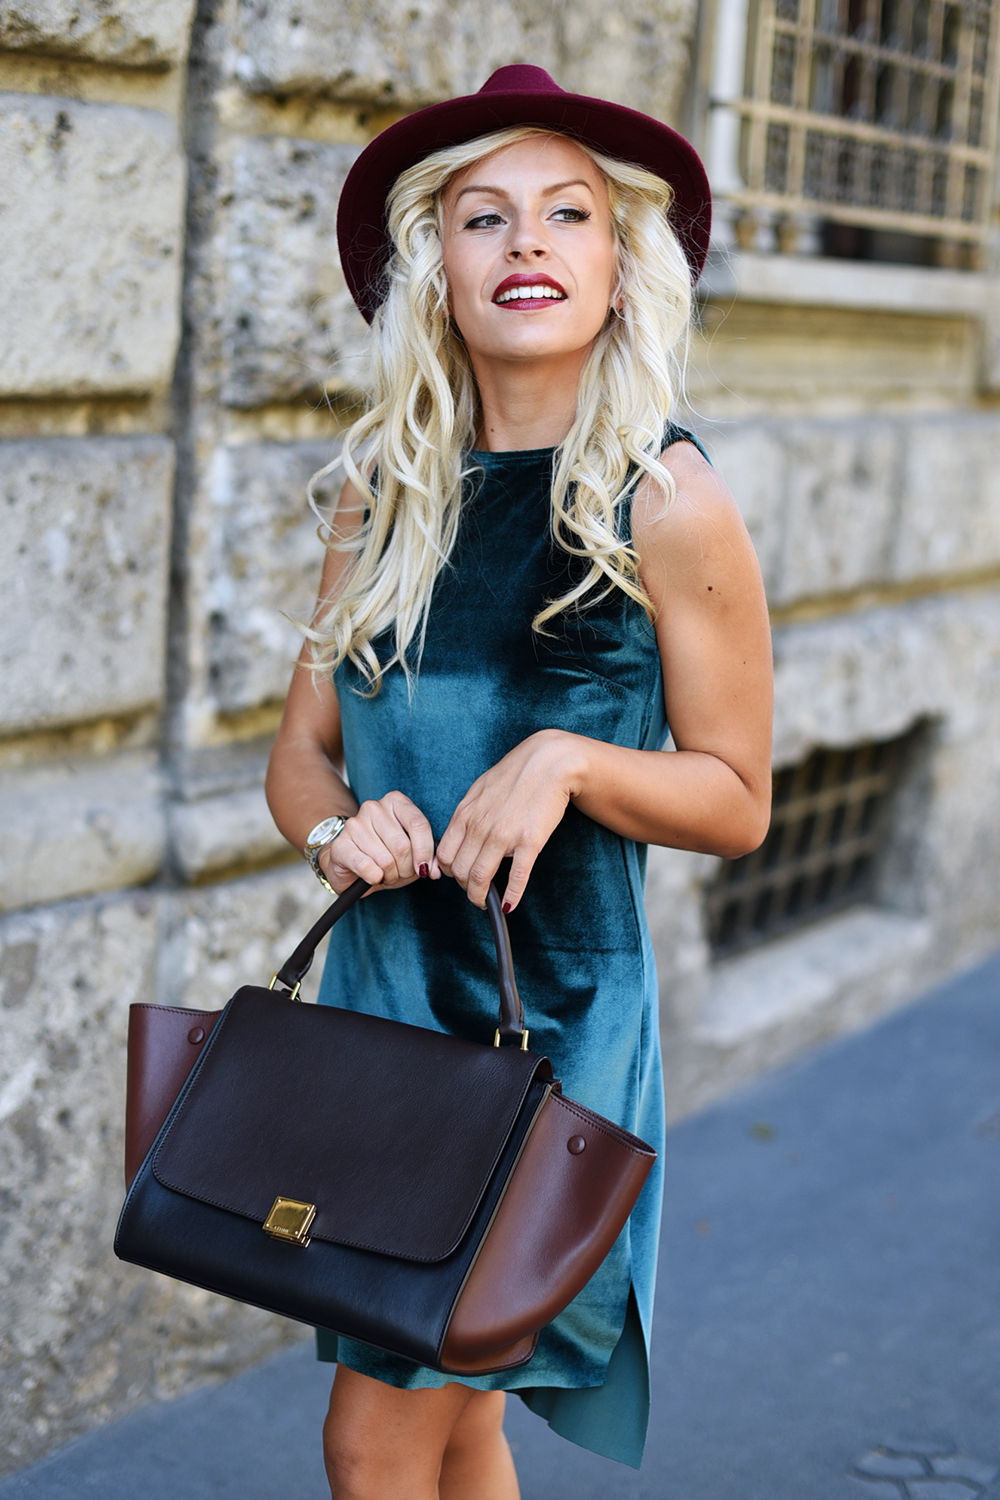 Rent Fashion bag, noleggio borse, affittare borse di lusso, rent luxury bags, soluzioni economiche occasioni speciali - fashion blog It-Girl by Eleonora Petrella